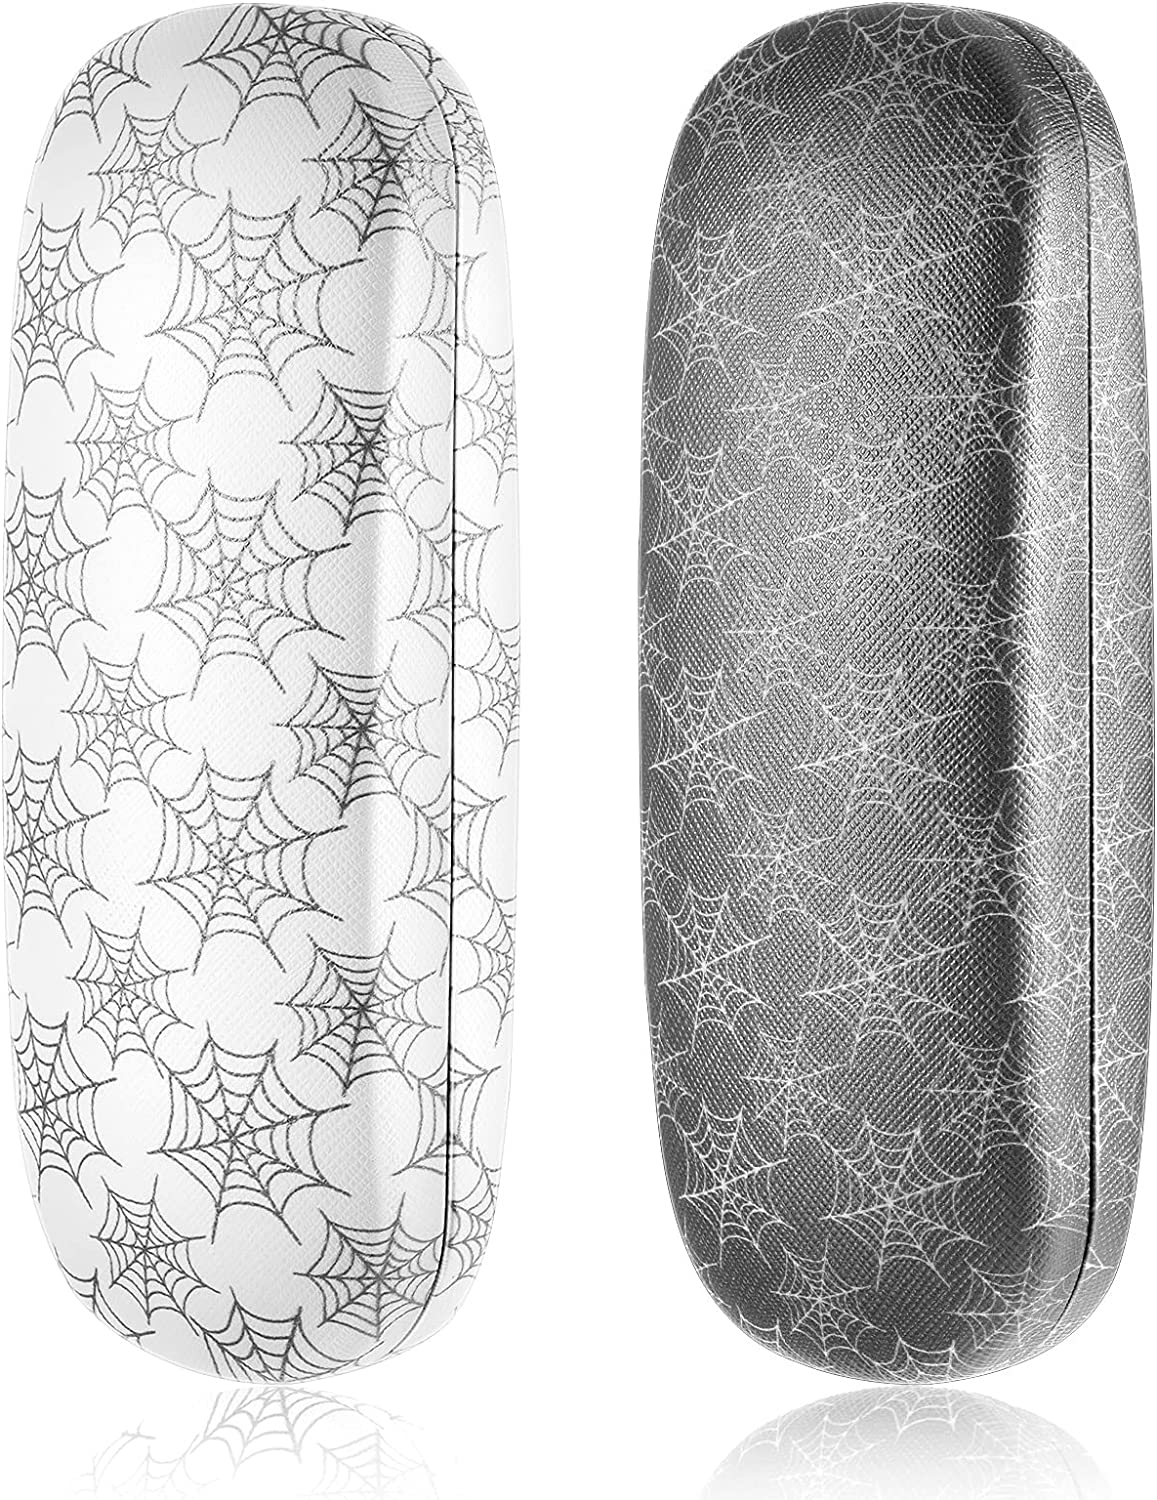 2 Pieces Hard Shell Eyeglasses Case Sunglasses Case Protective Spider Web Linen Cases for Halloween with Cleaning Cloth